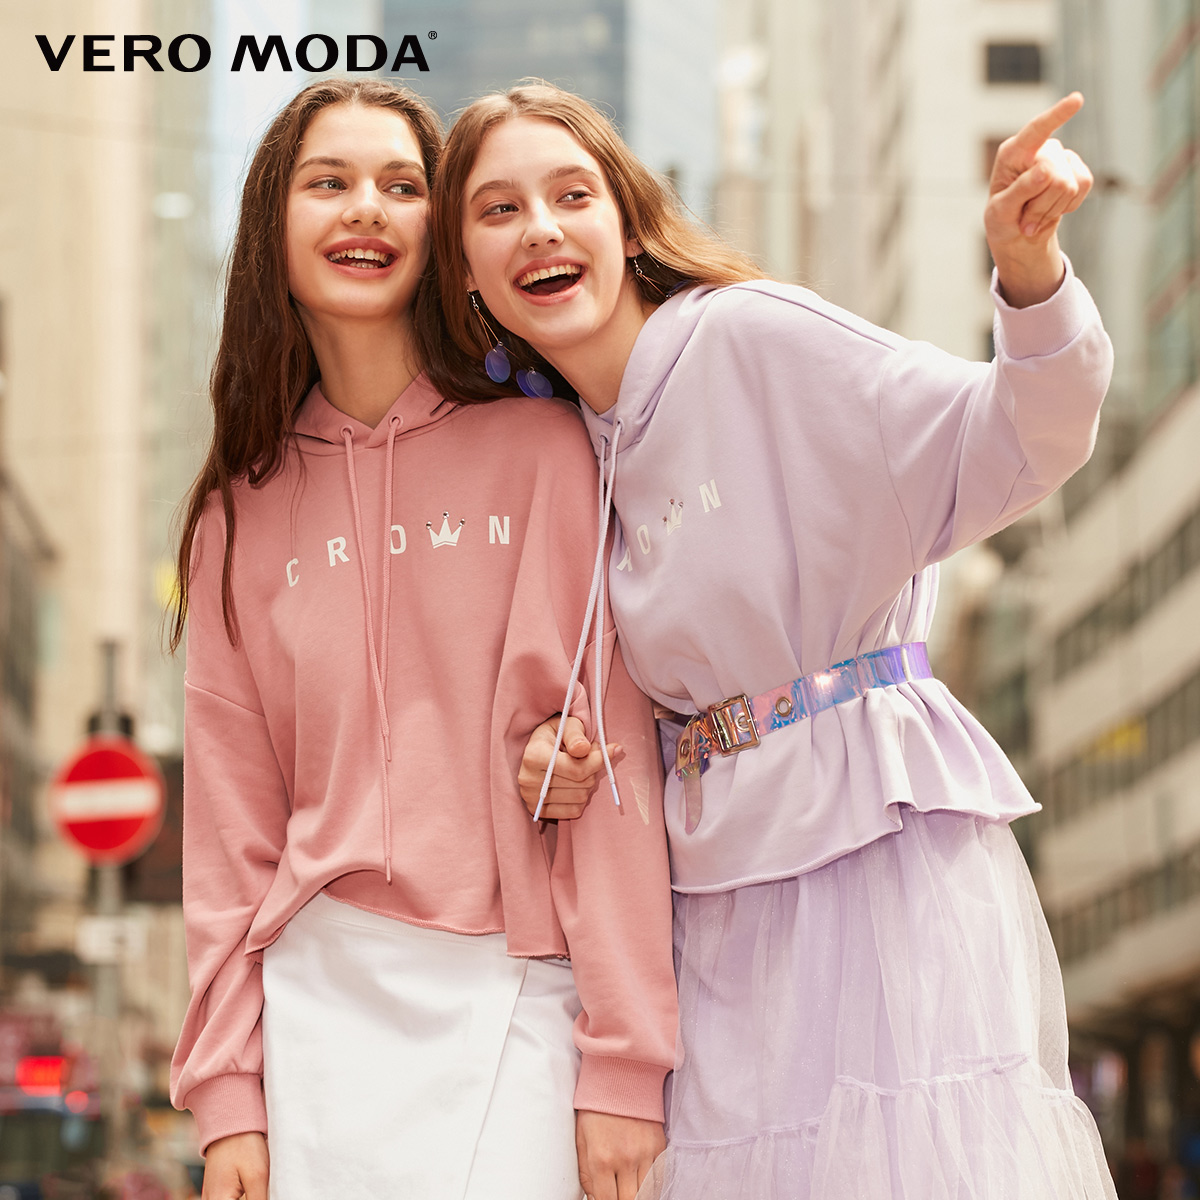 Vero Moda New Women's Letter Print Rhinestones Ribbed Cuffs Loose Fit Pure Hoodie | 319133511